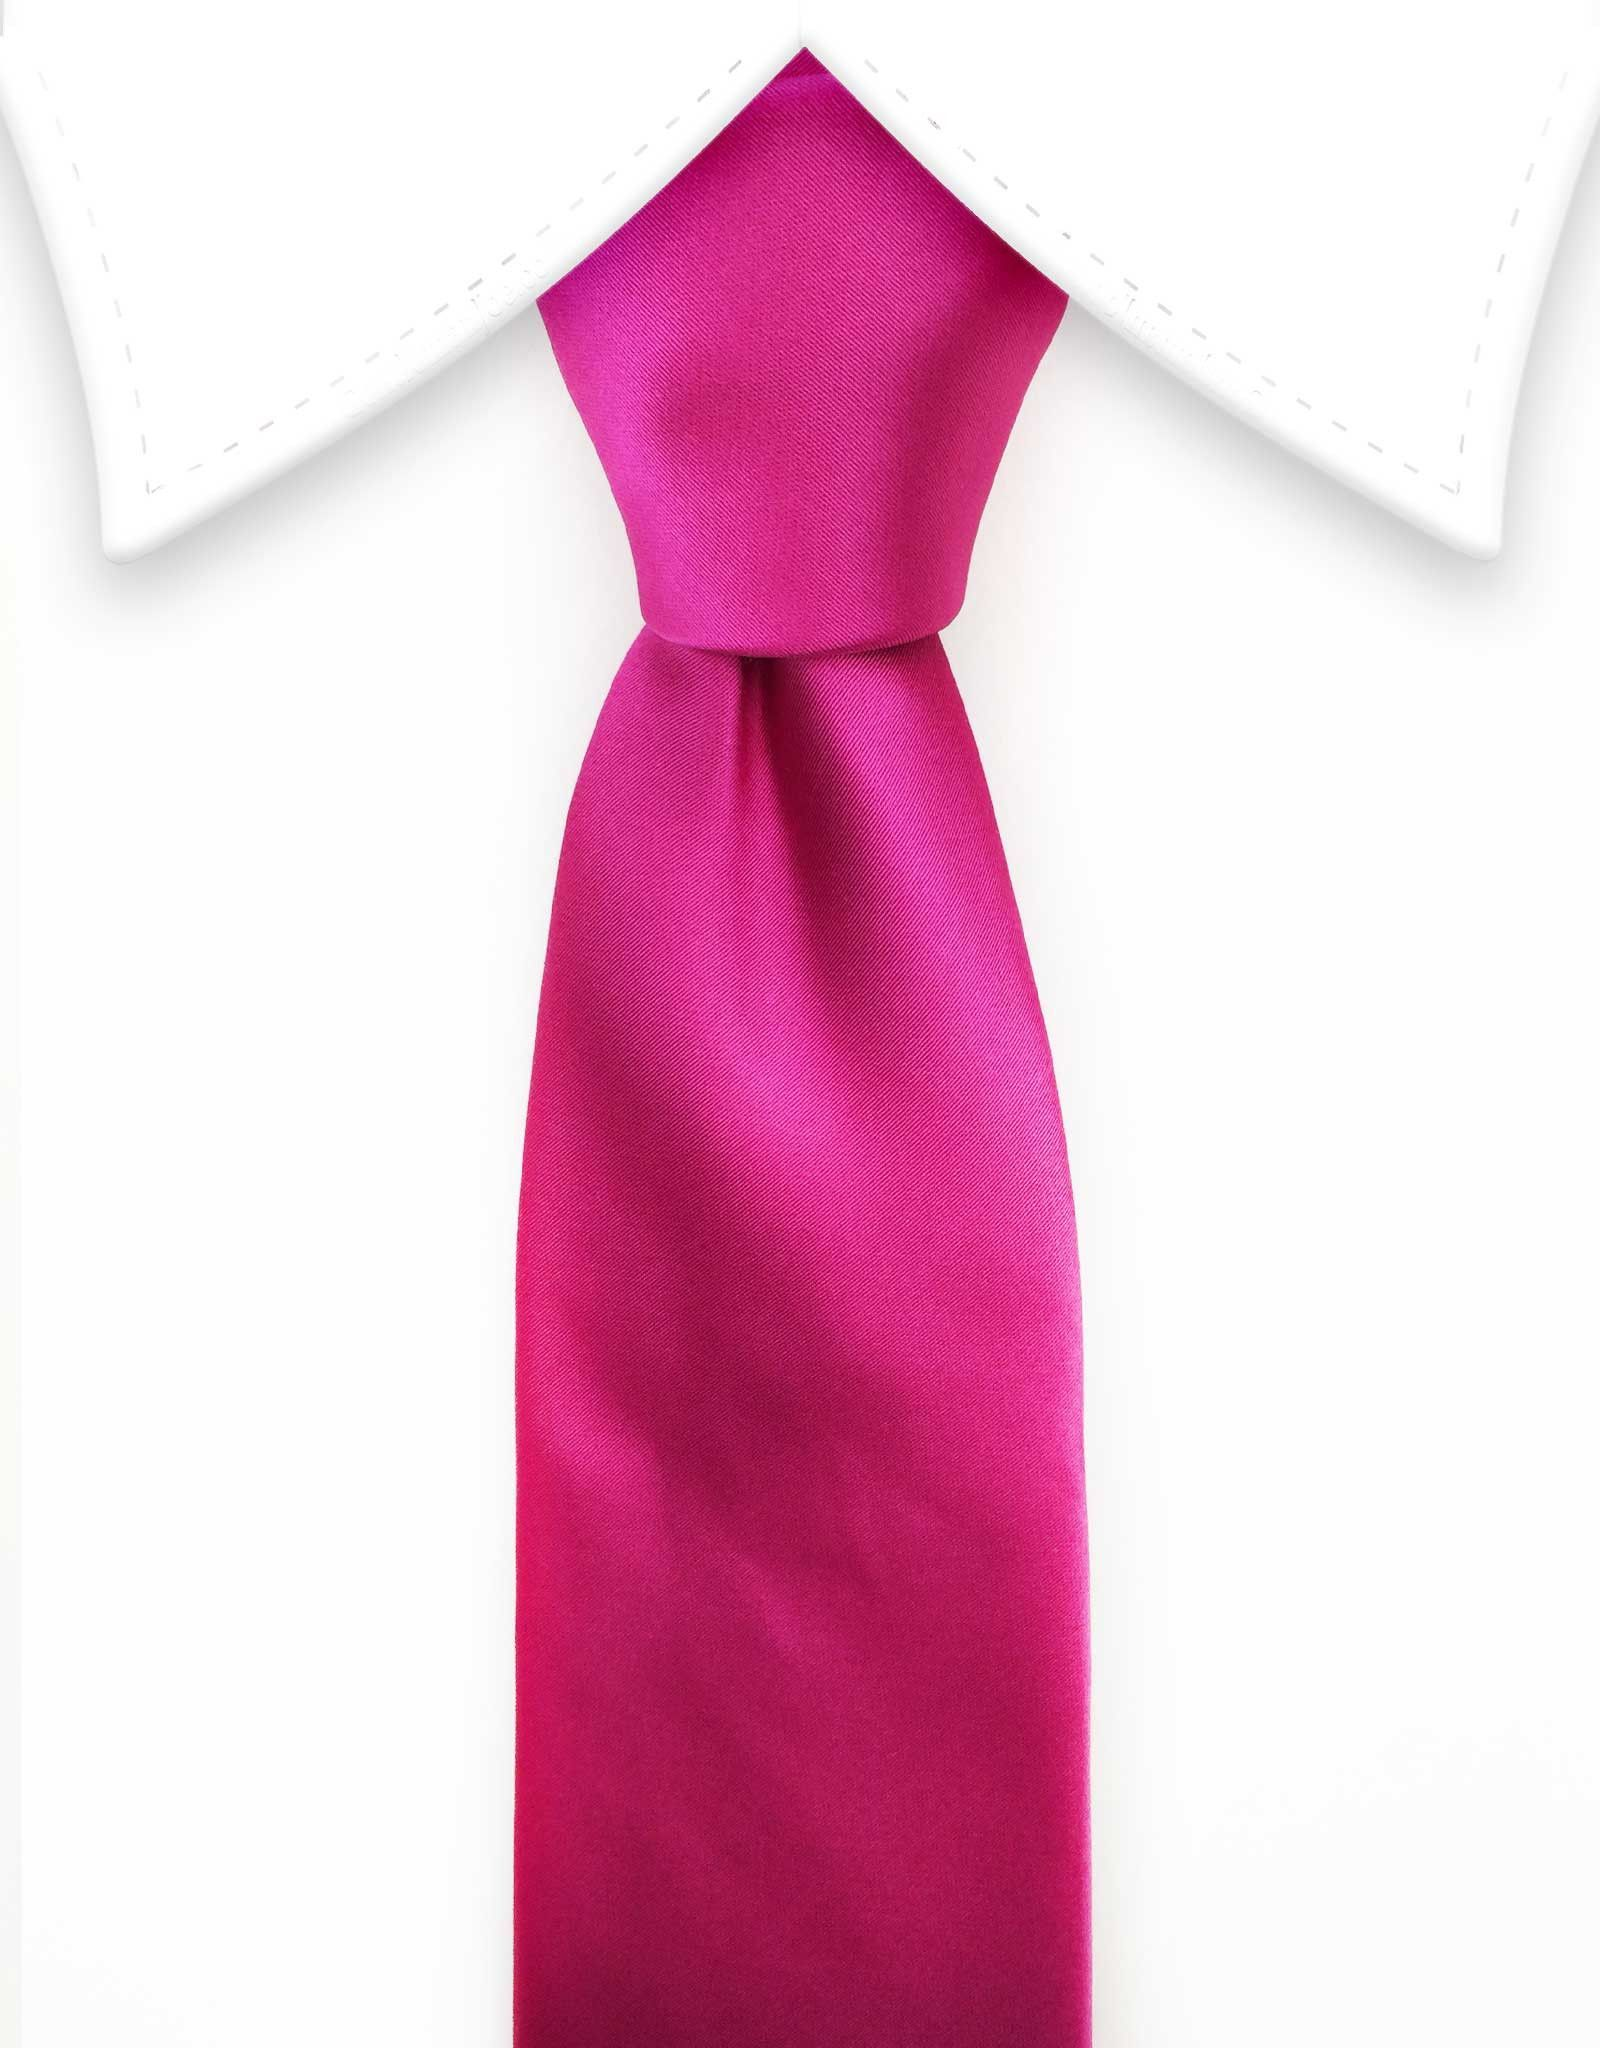 3d2c4e241964 Hot Pink Solid Tie | Splash The White Shirt | Pink ties, Tie, Hot pink